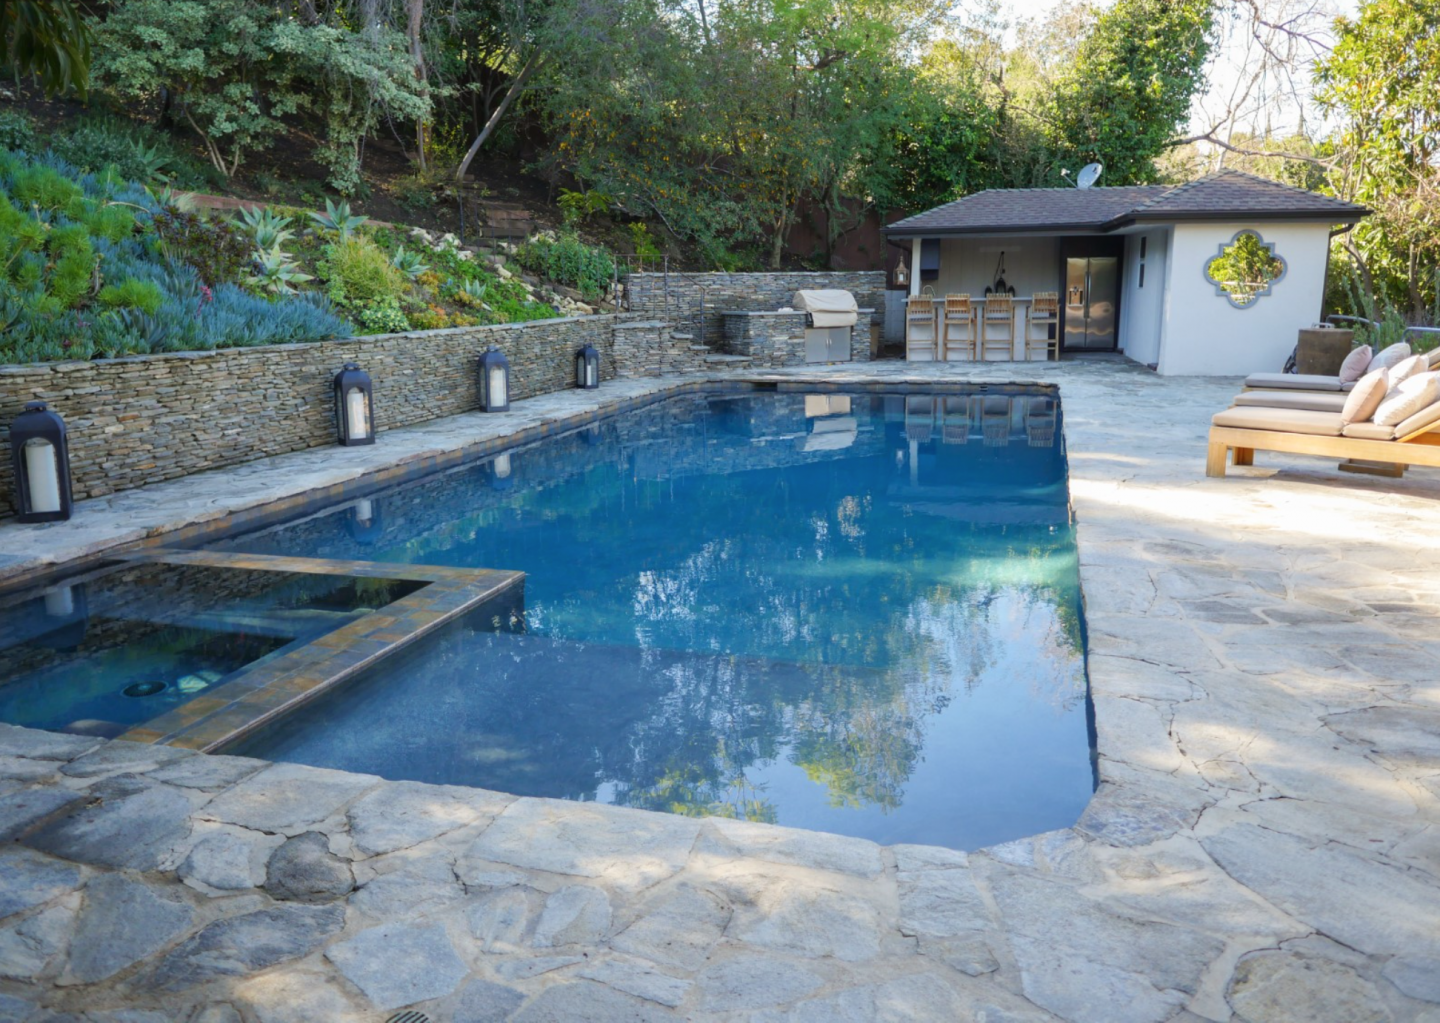 Pool with outdoor shower and changing room